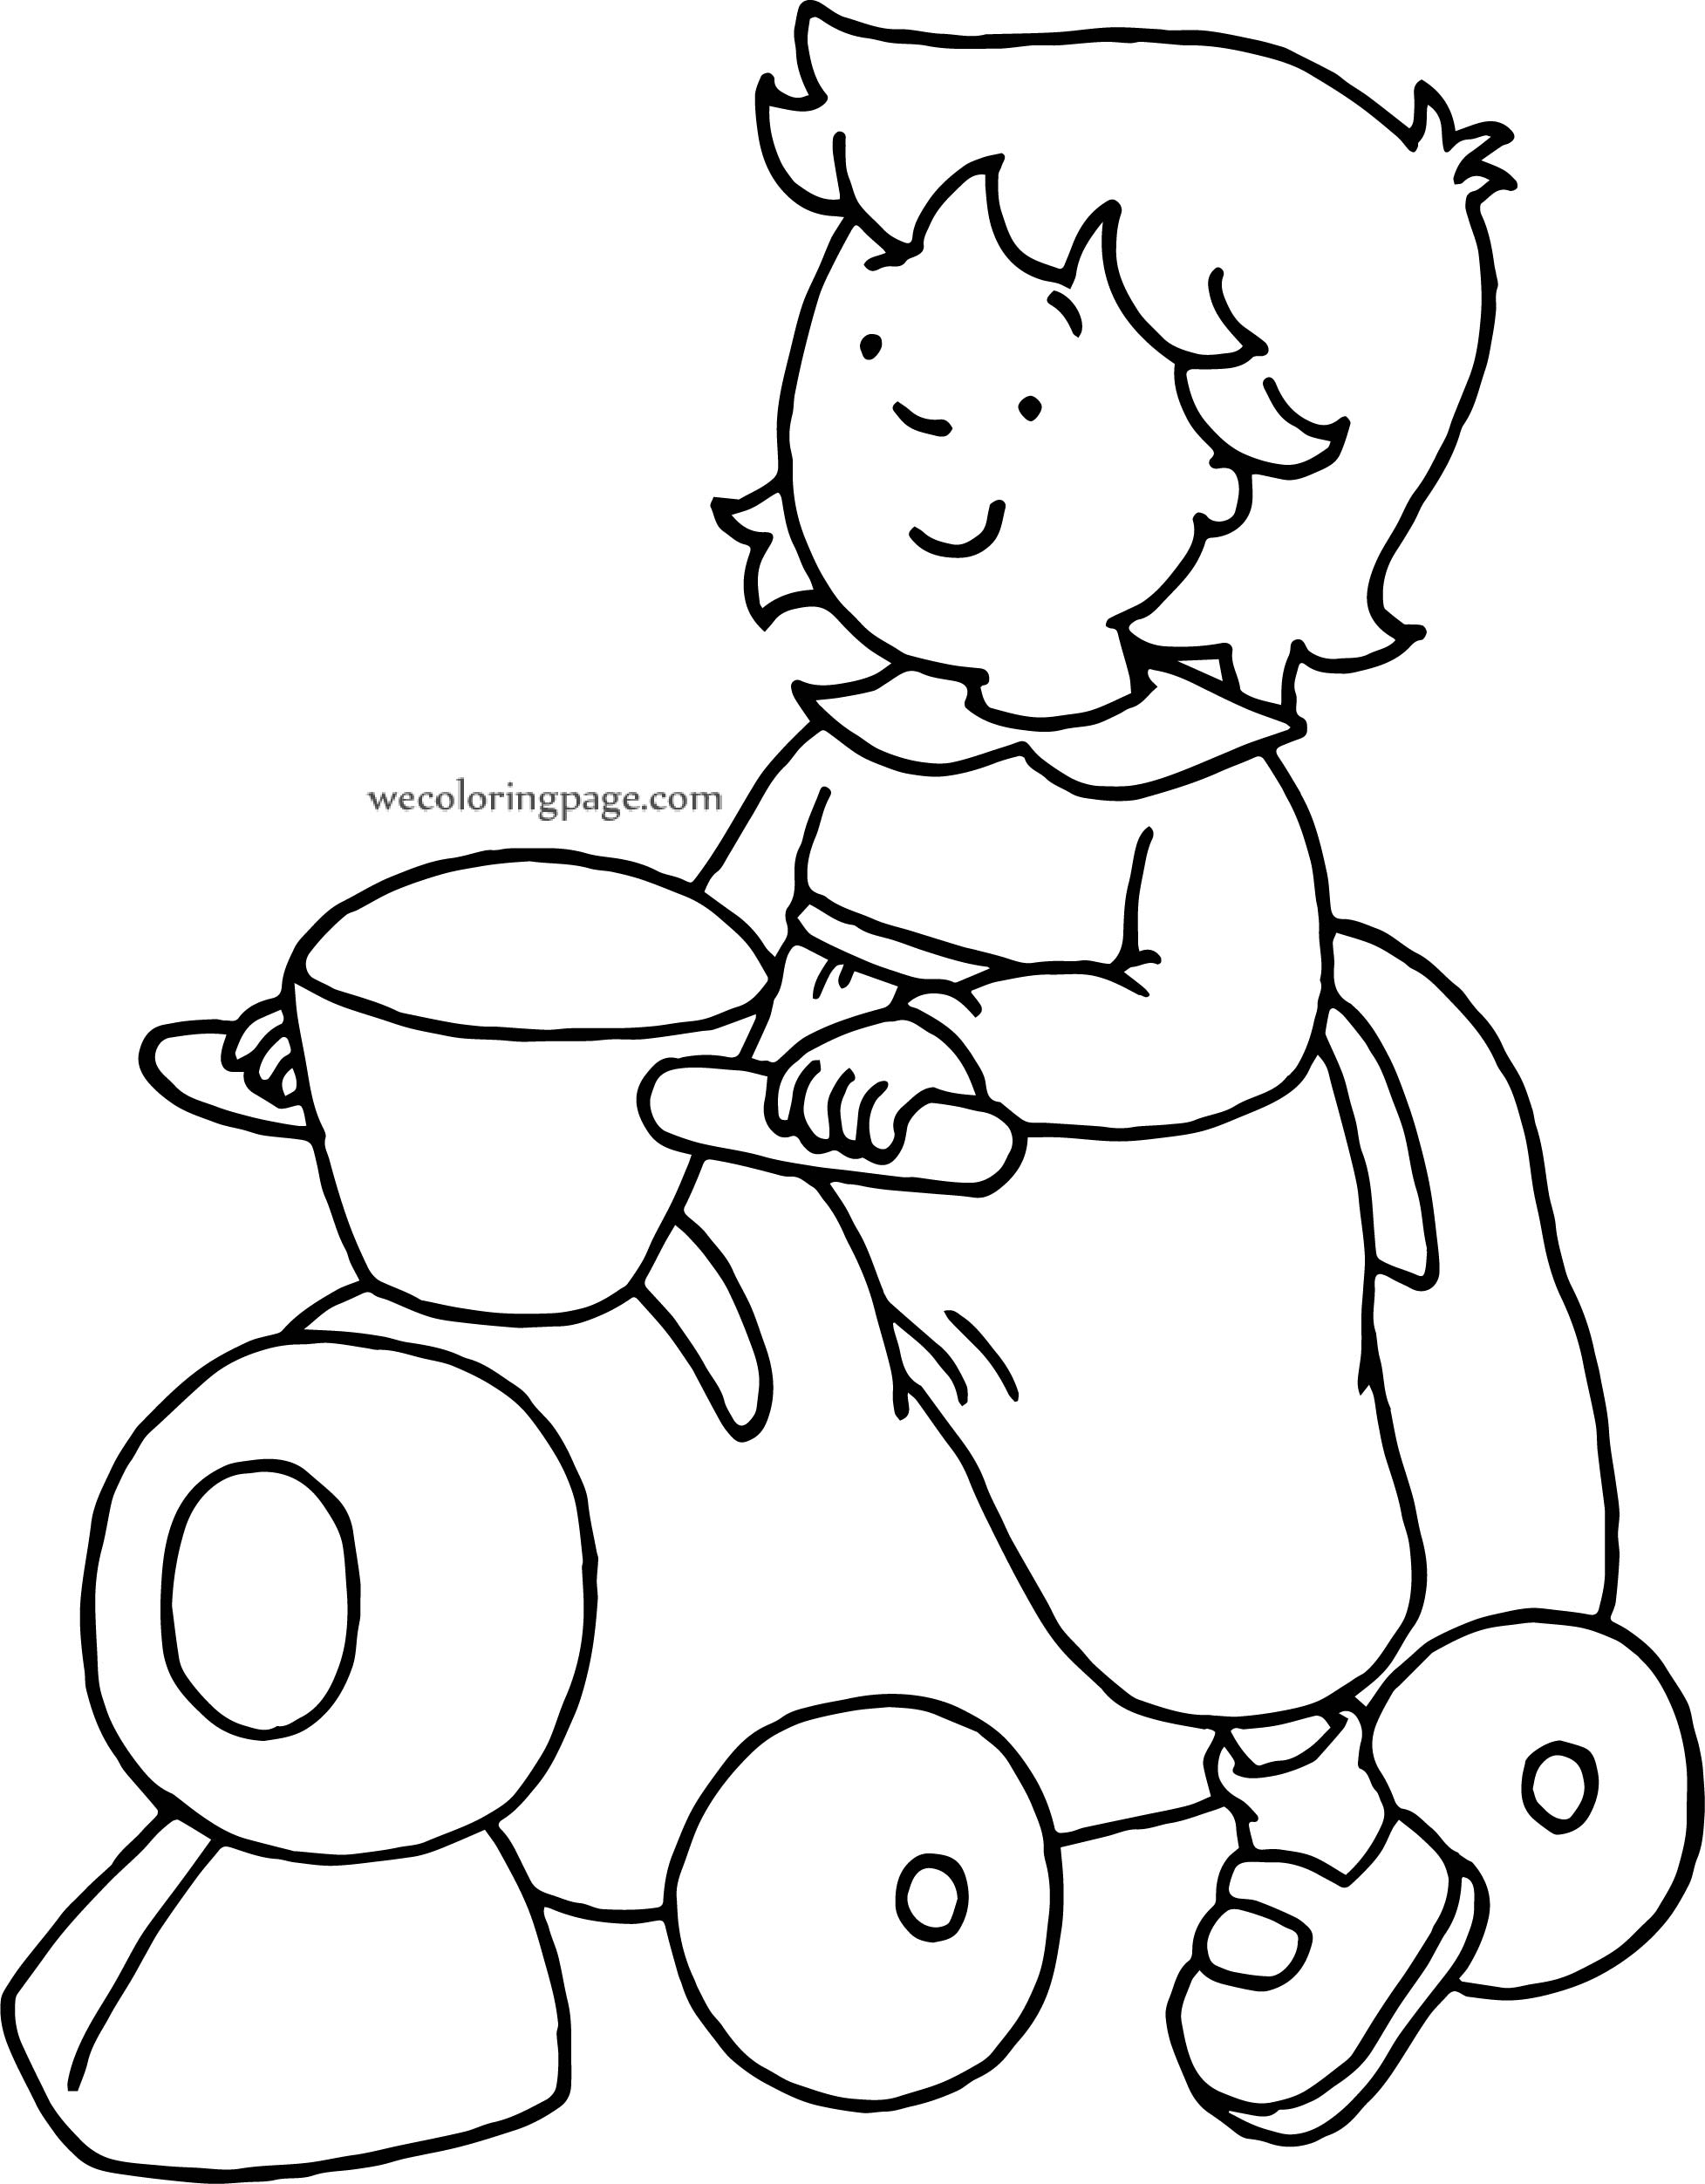 Caillou Family Coloring Pages best colouring pages for kids